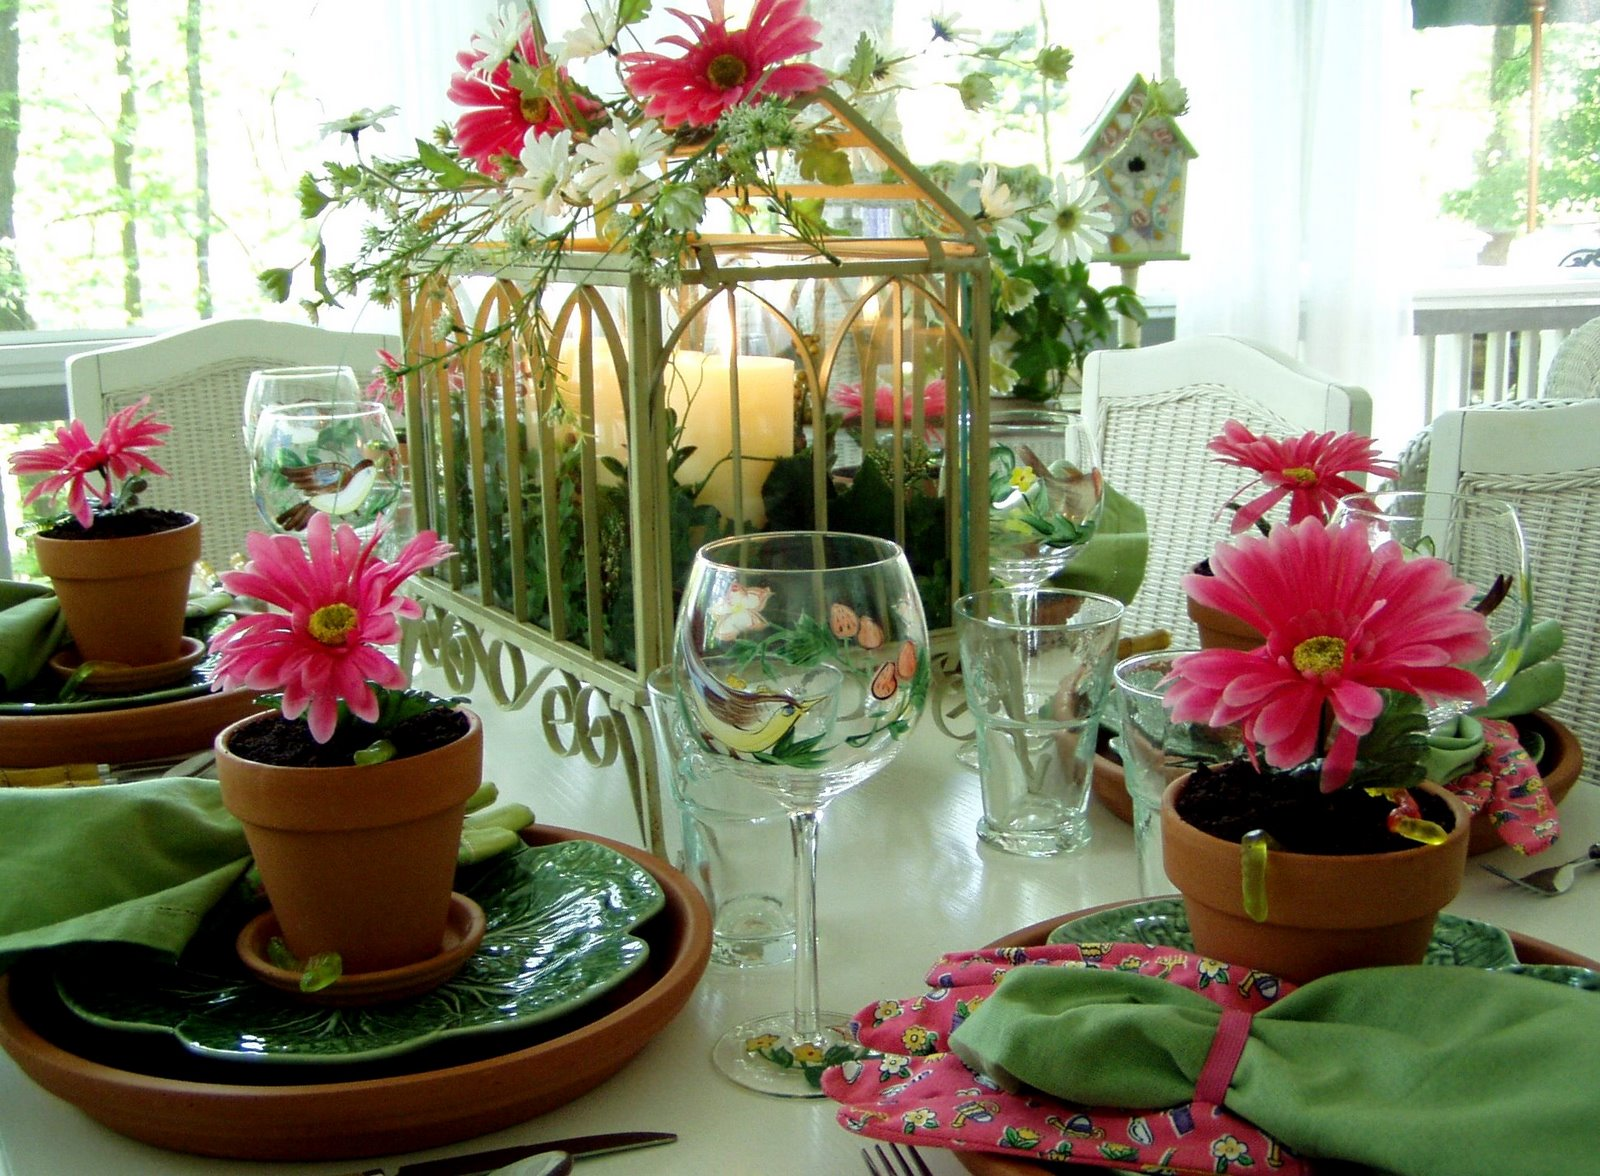 A Garden Party Table Setting, TablesScape on Backyard Table Decor id=79616